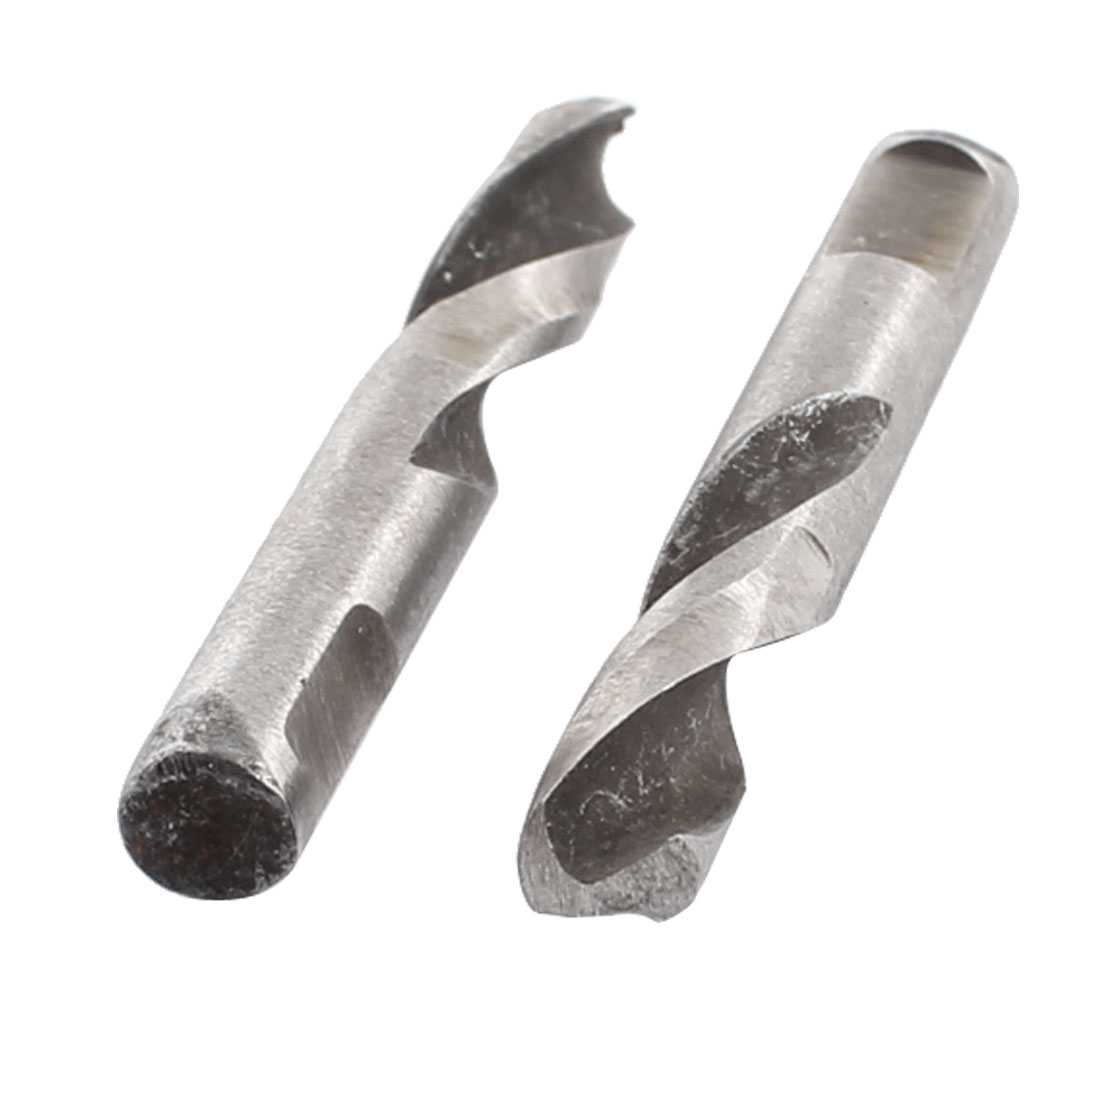 2pcs Electric Hammer Drilling 6mm Tip U-flute Percussion Masonry Drill Bits